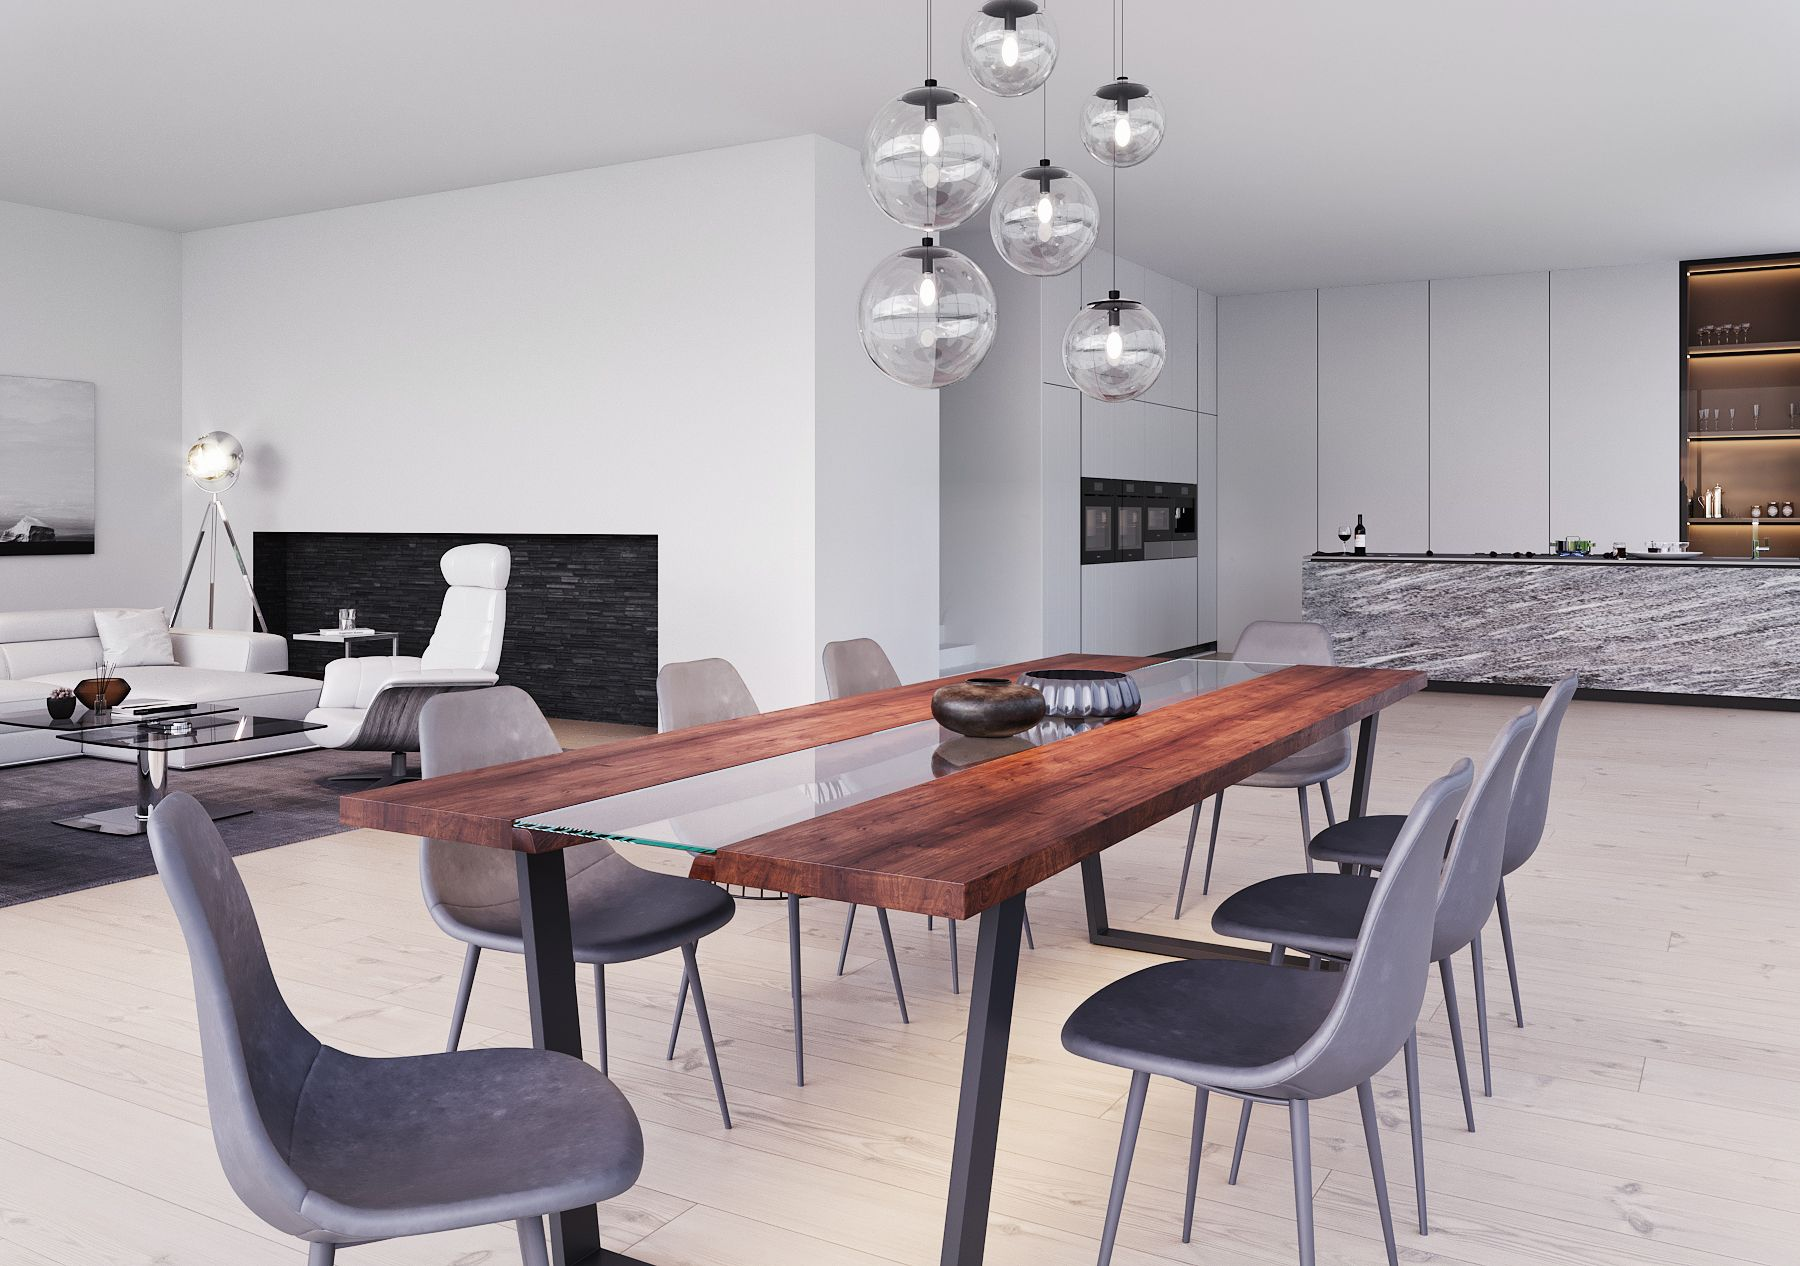 Kaawa Dining Table Large Dining Table Modern Dining Table